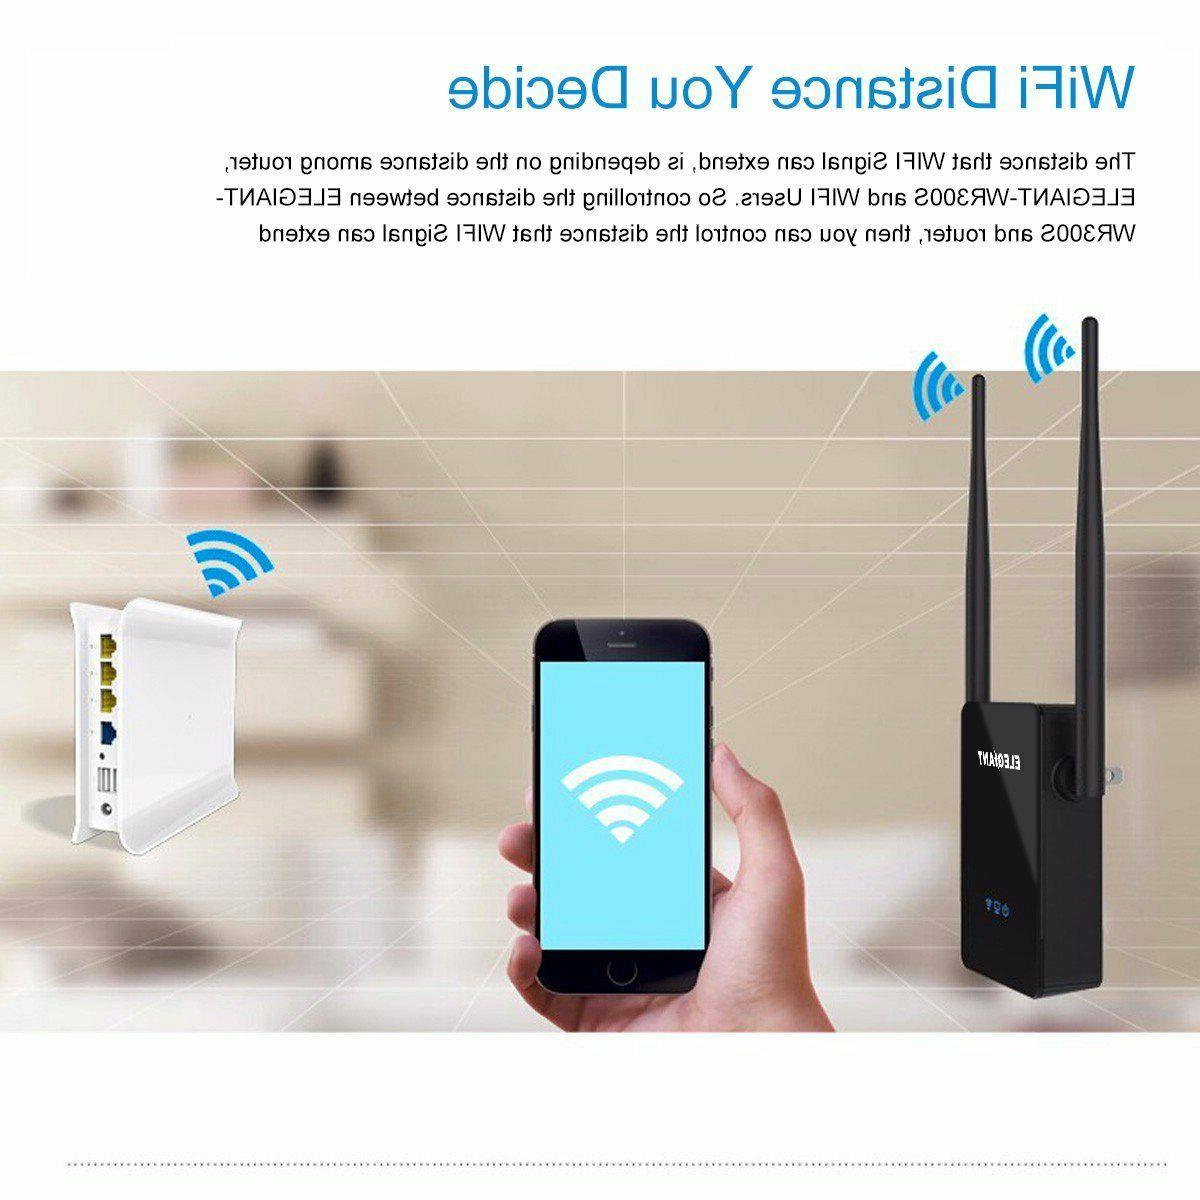 WiFi Range Booster Network Router Wireless Signal Repeater